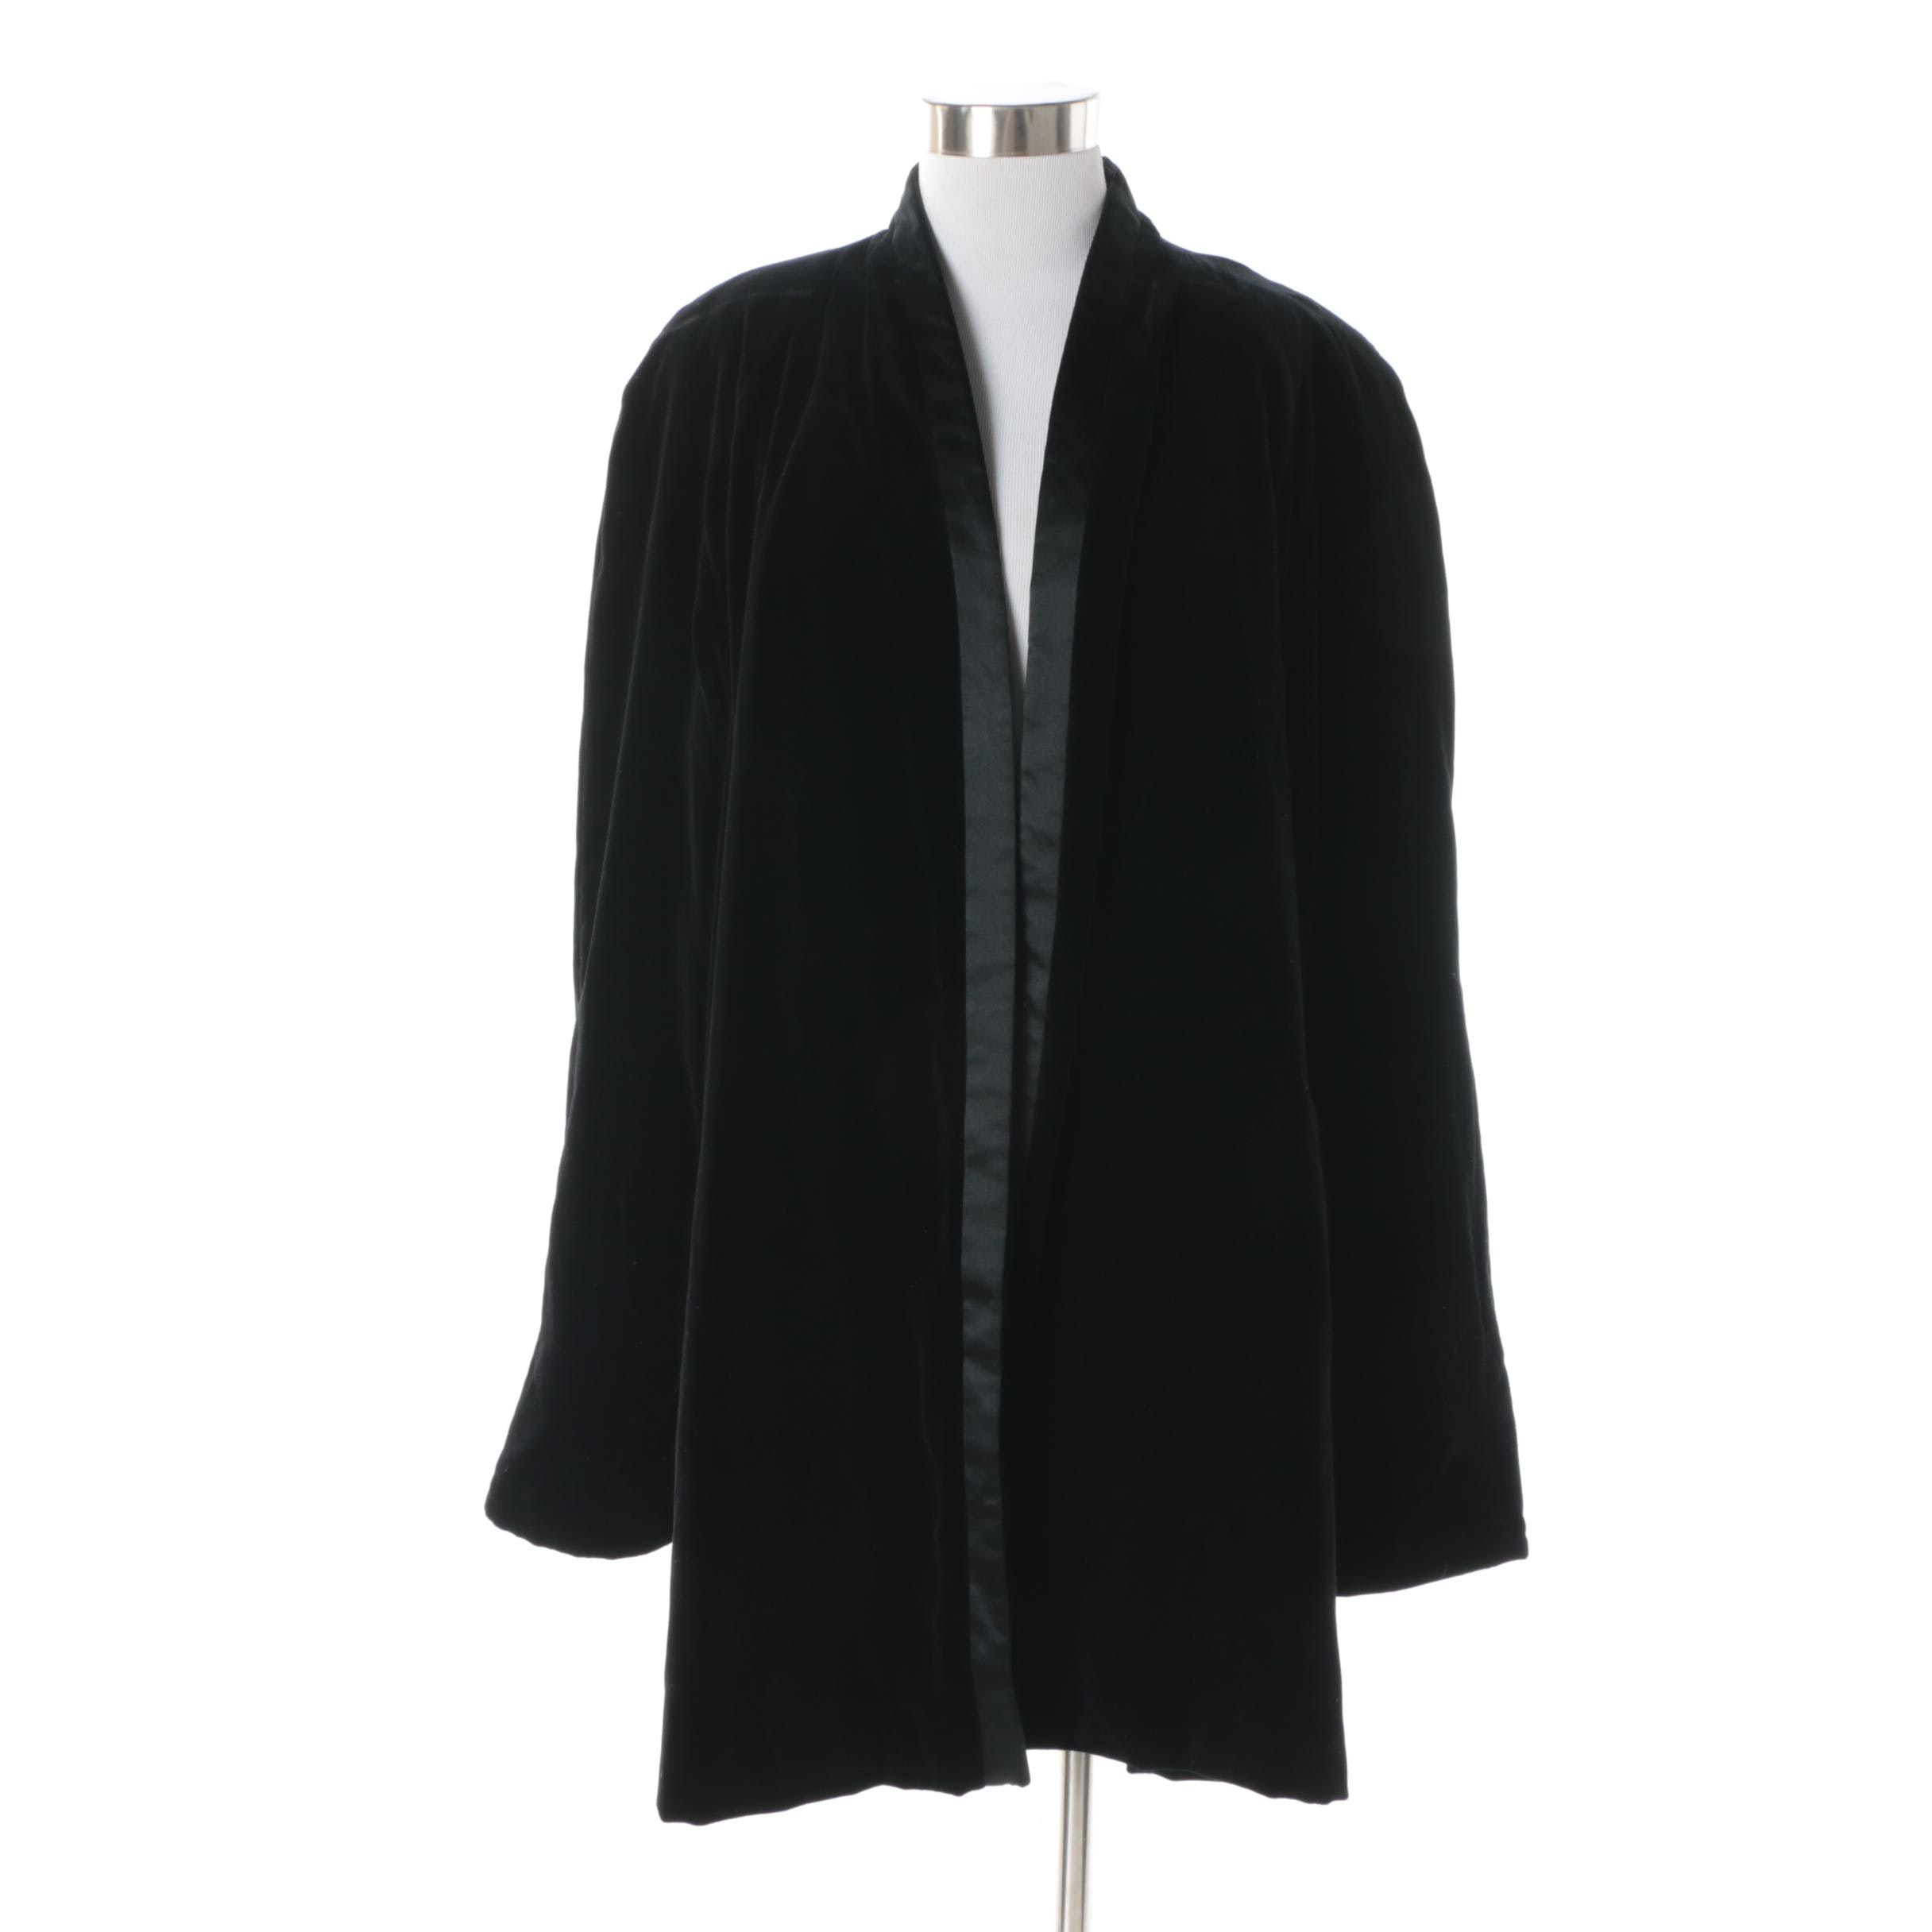 1980s Vintage Escada Couture Black Velvet Opera Coat with Quilted Lining